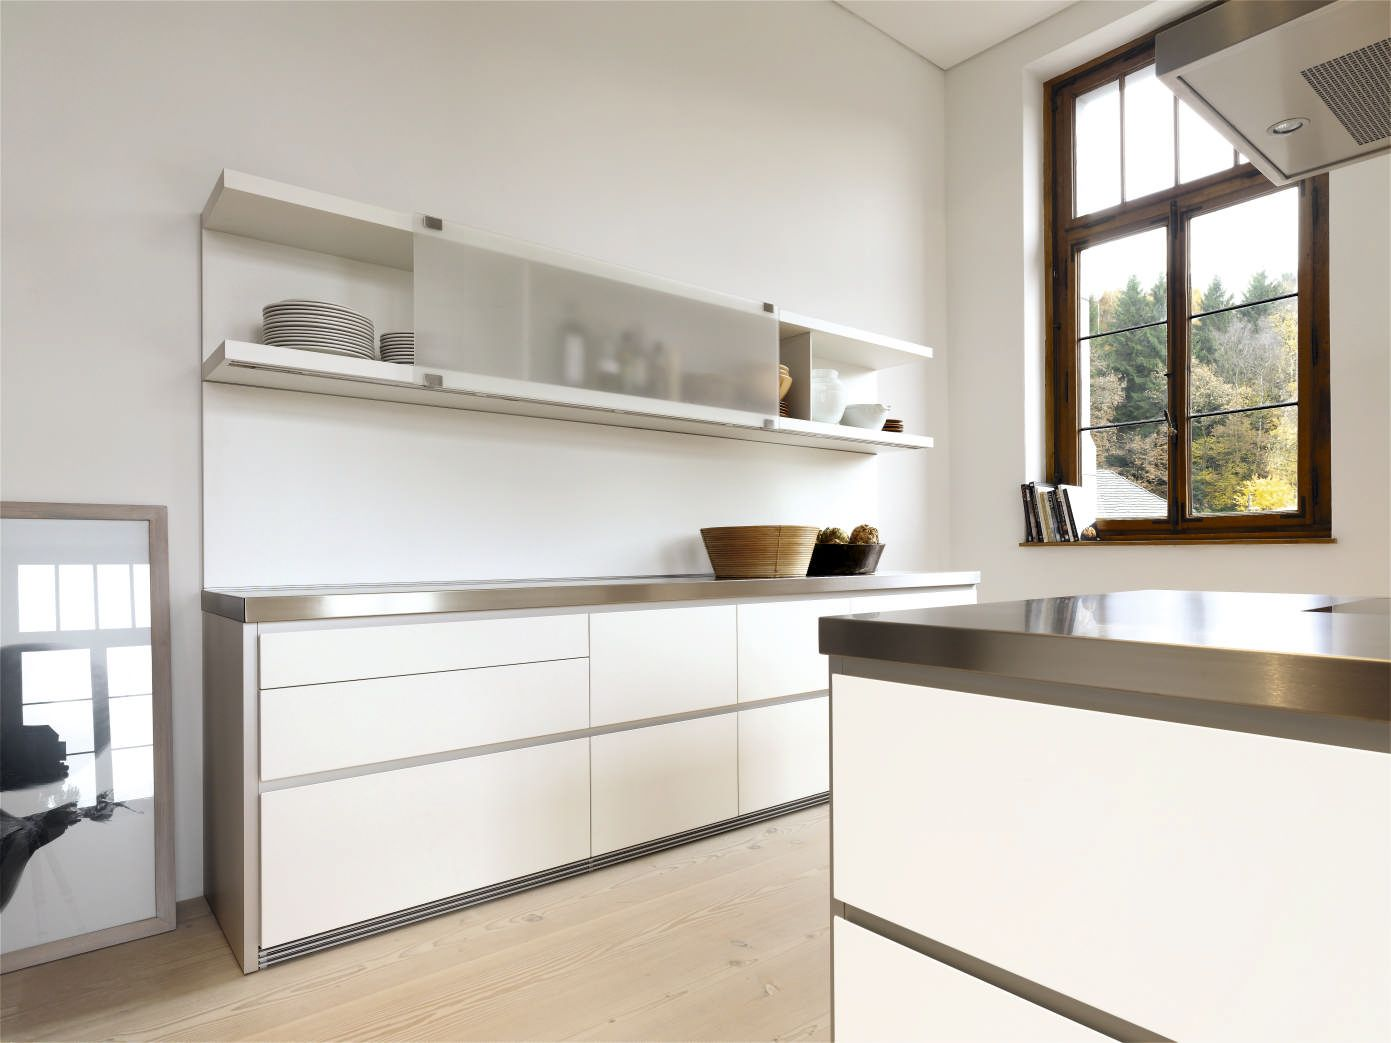 bulthaup b1 with Alpine white lacquered fronts, aluminum recess profiles, sliding glass doors on the shelving system, stainless worktops and aluminum plinths.